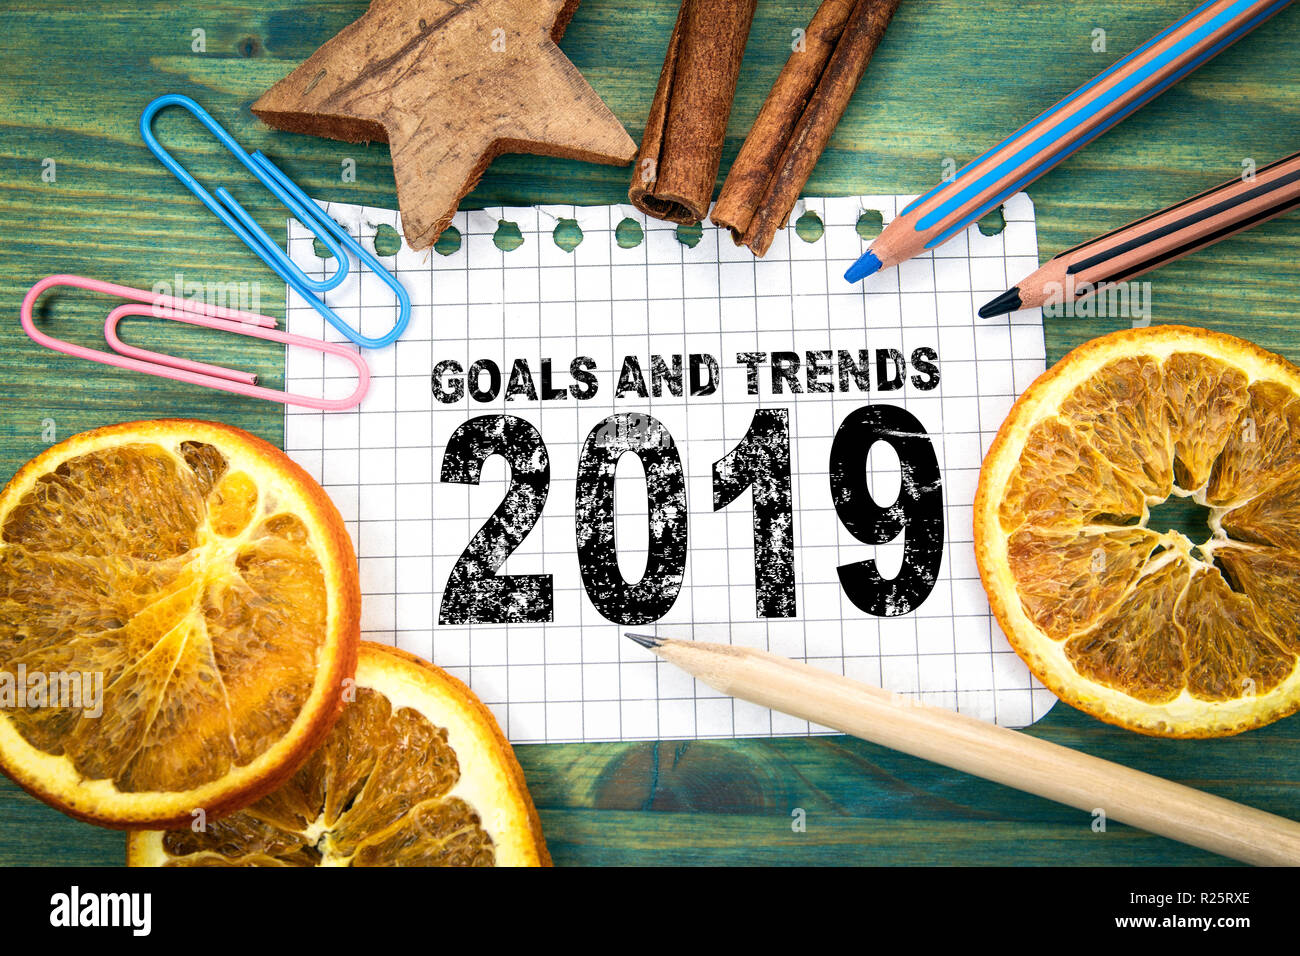 Goals and trends 2019. Christmas and holiday background - Stock Image